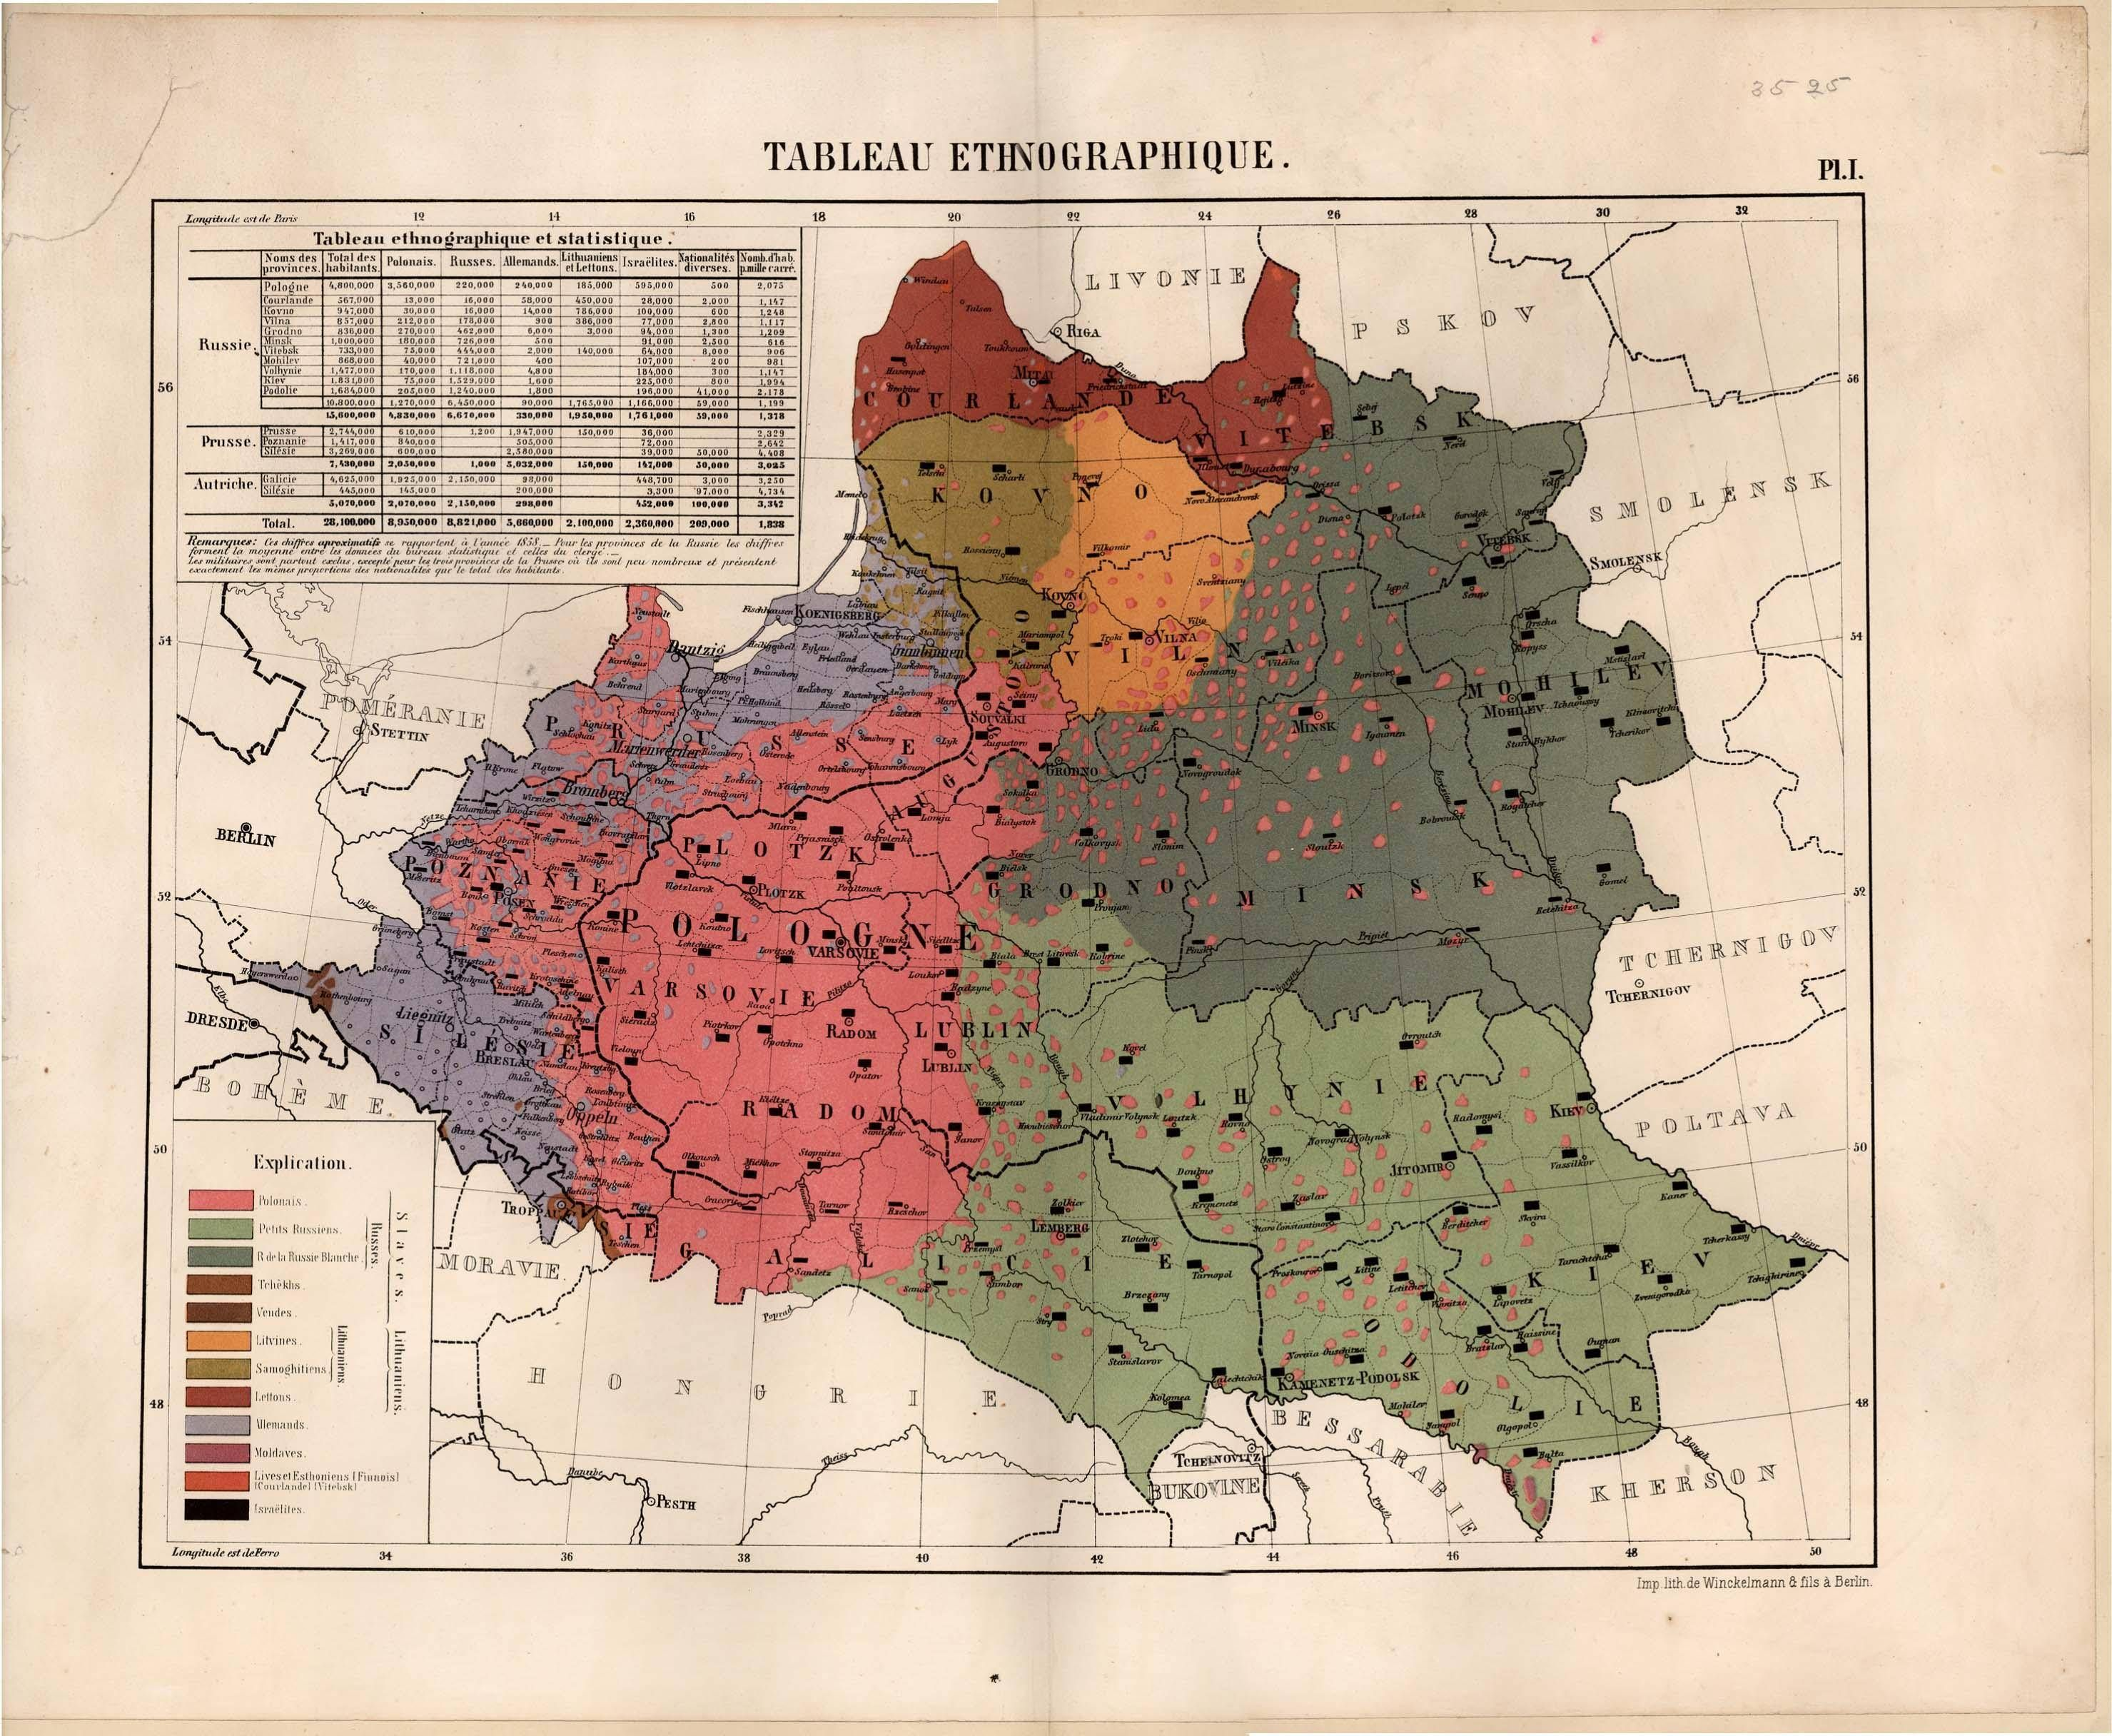 Ethnographic Map and Statistics of Partitioned Poland 1858 map